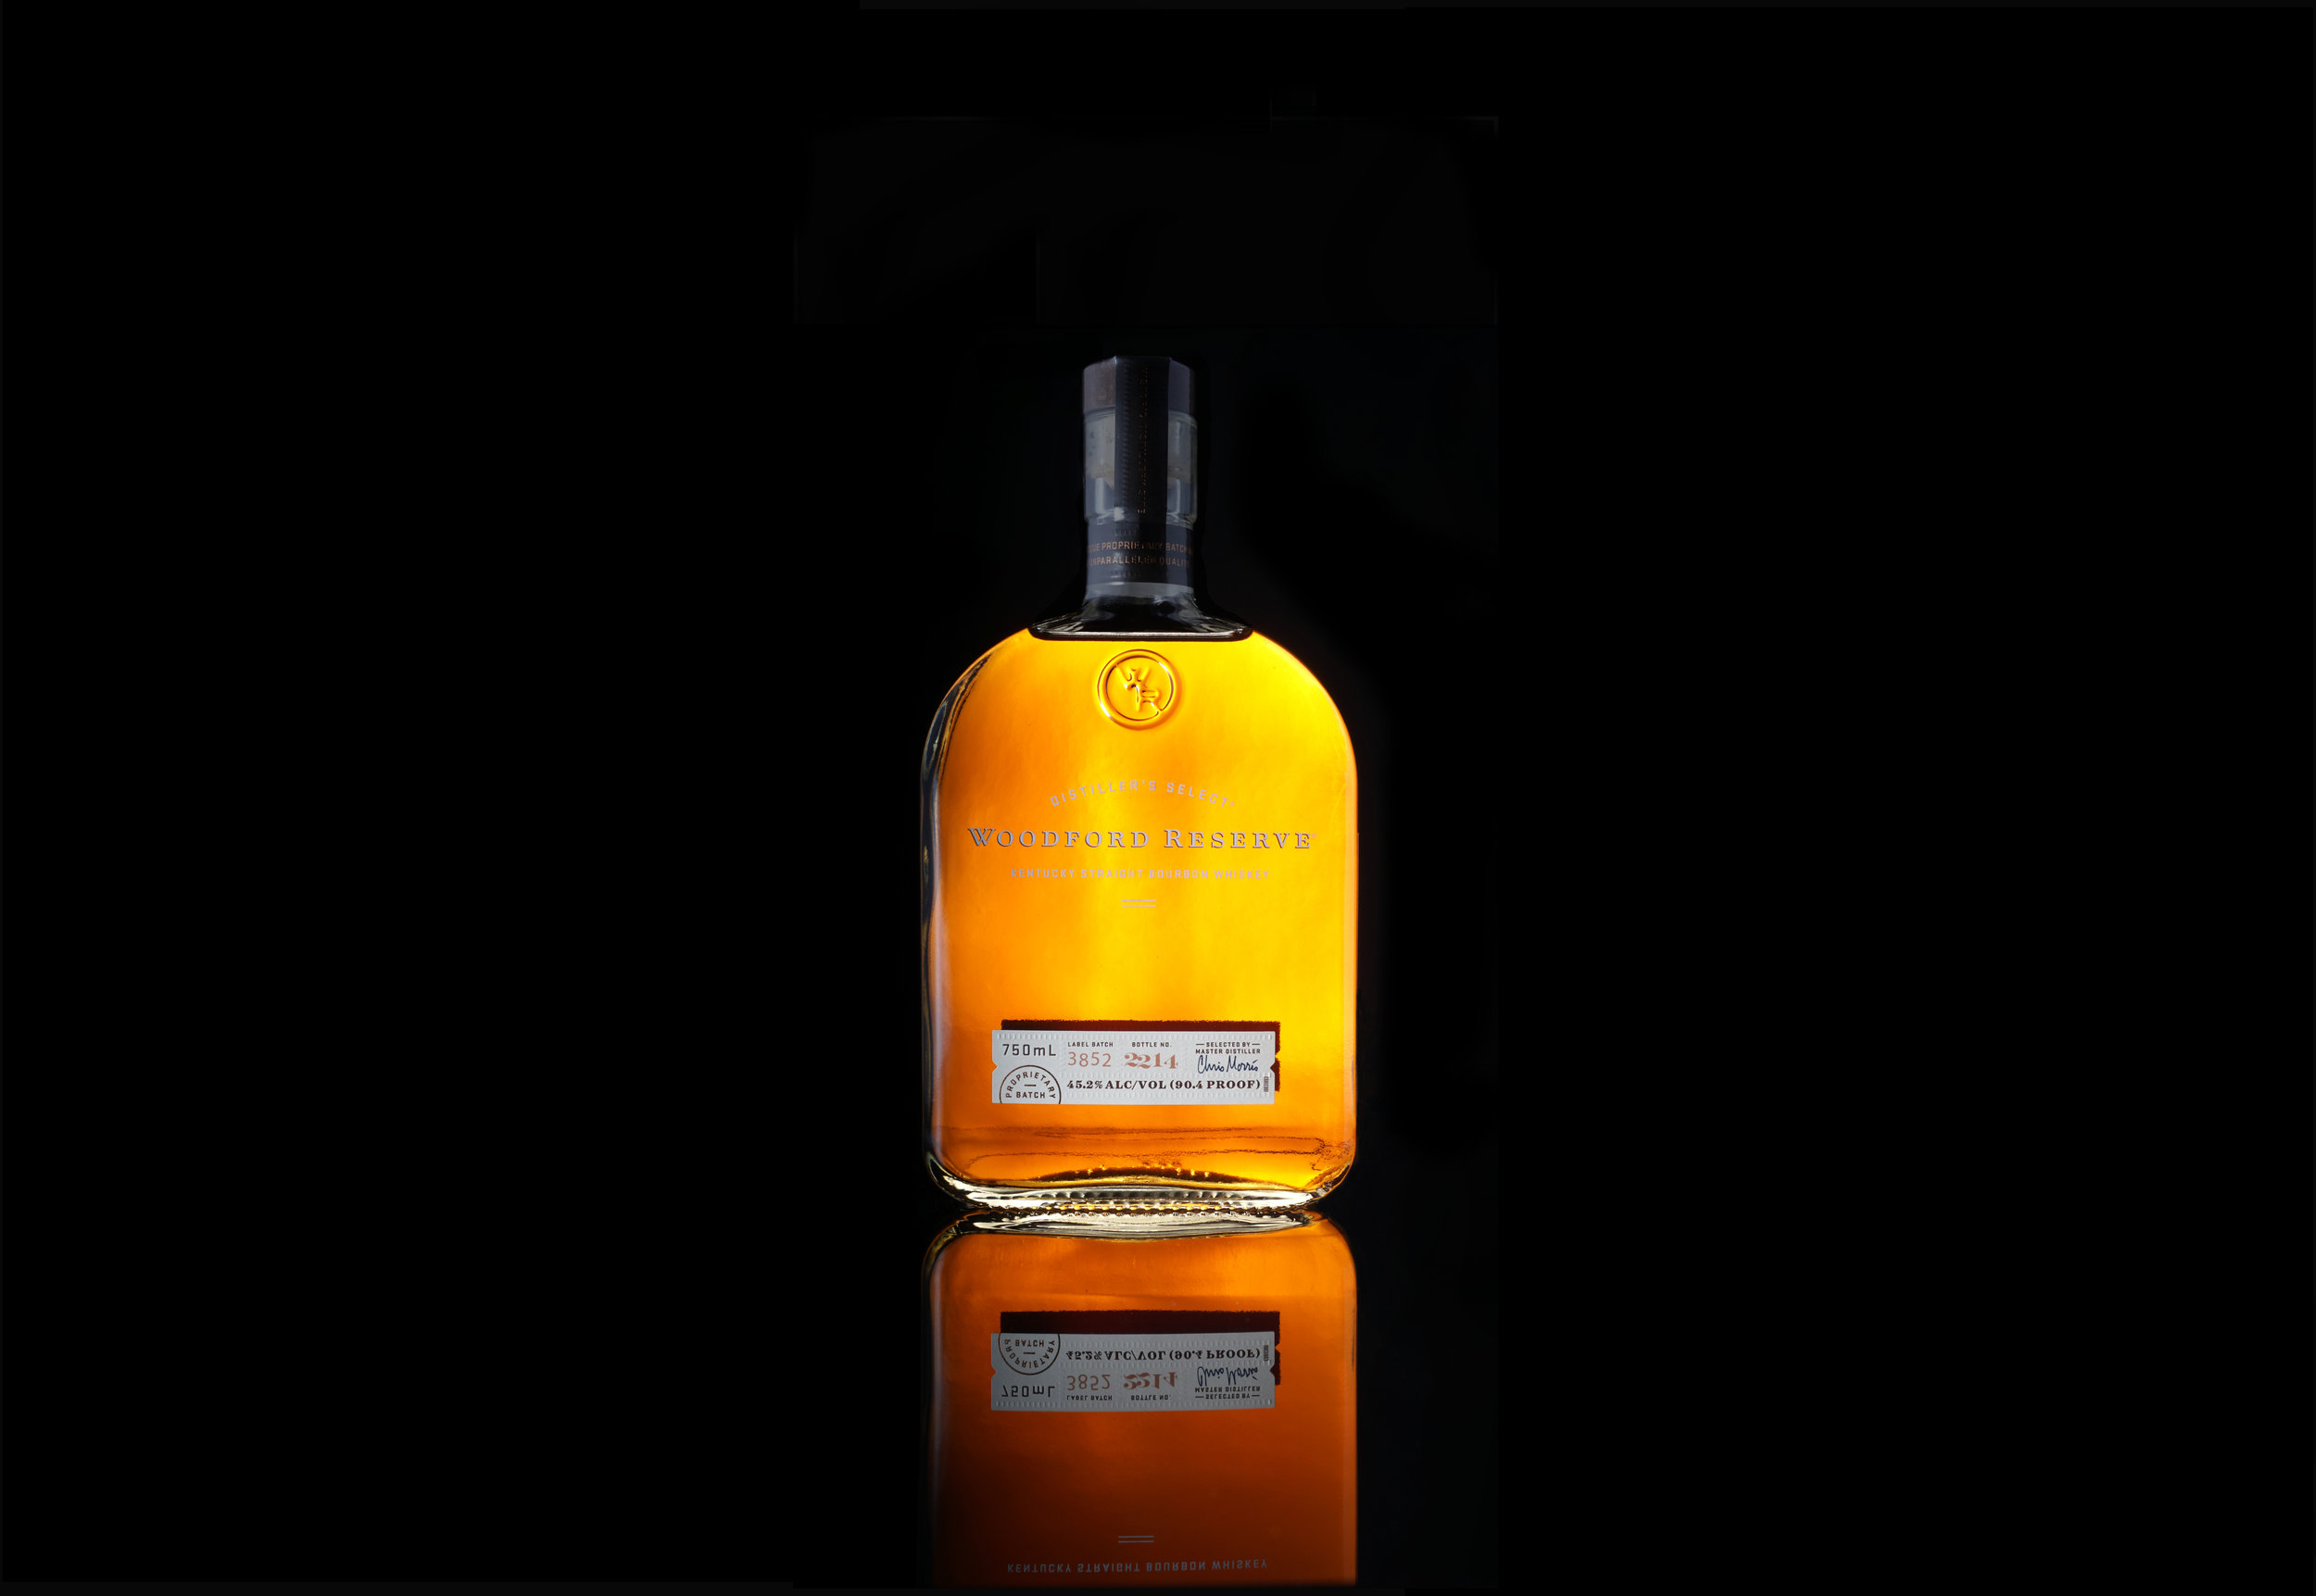 WoodFord Reserve Fine Whiskey